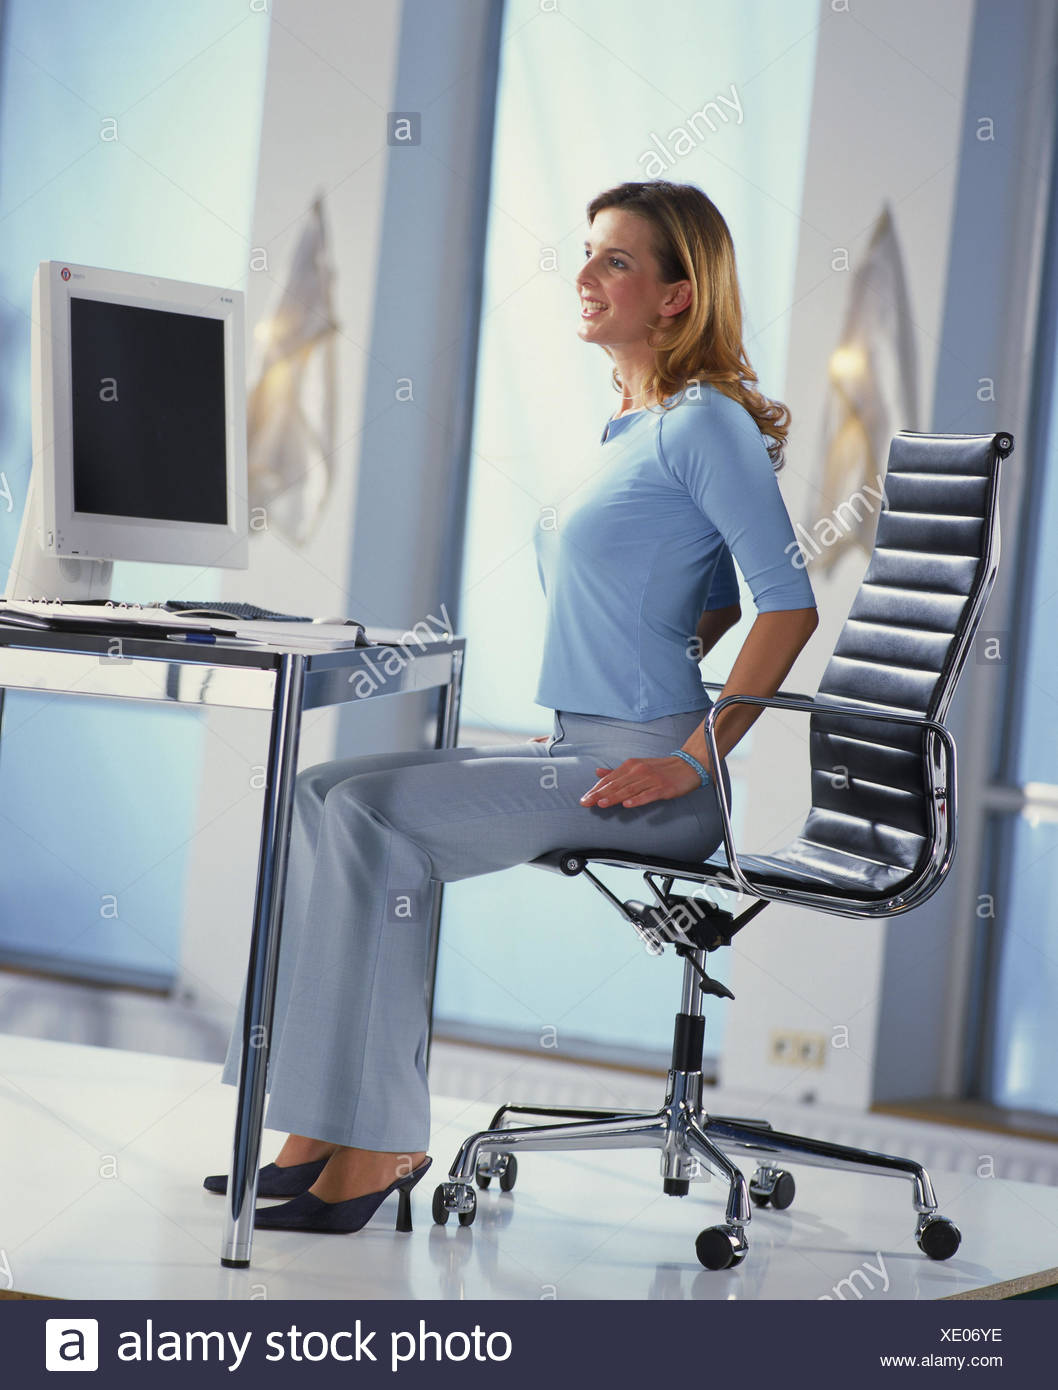 Clerk, workplace, gymnastics, desk, relaxation exercises, relaxation, musculature, position, Dehnübungen, ergonomics, position, inside - Stock Image